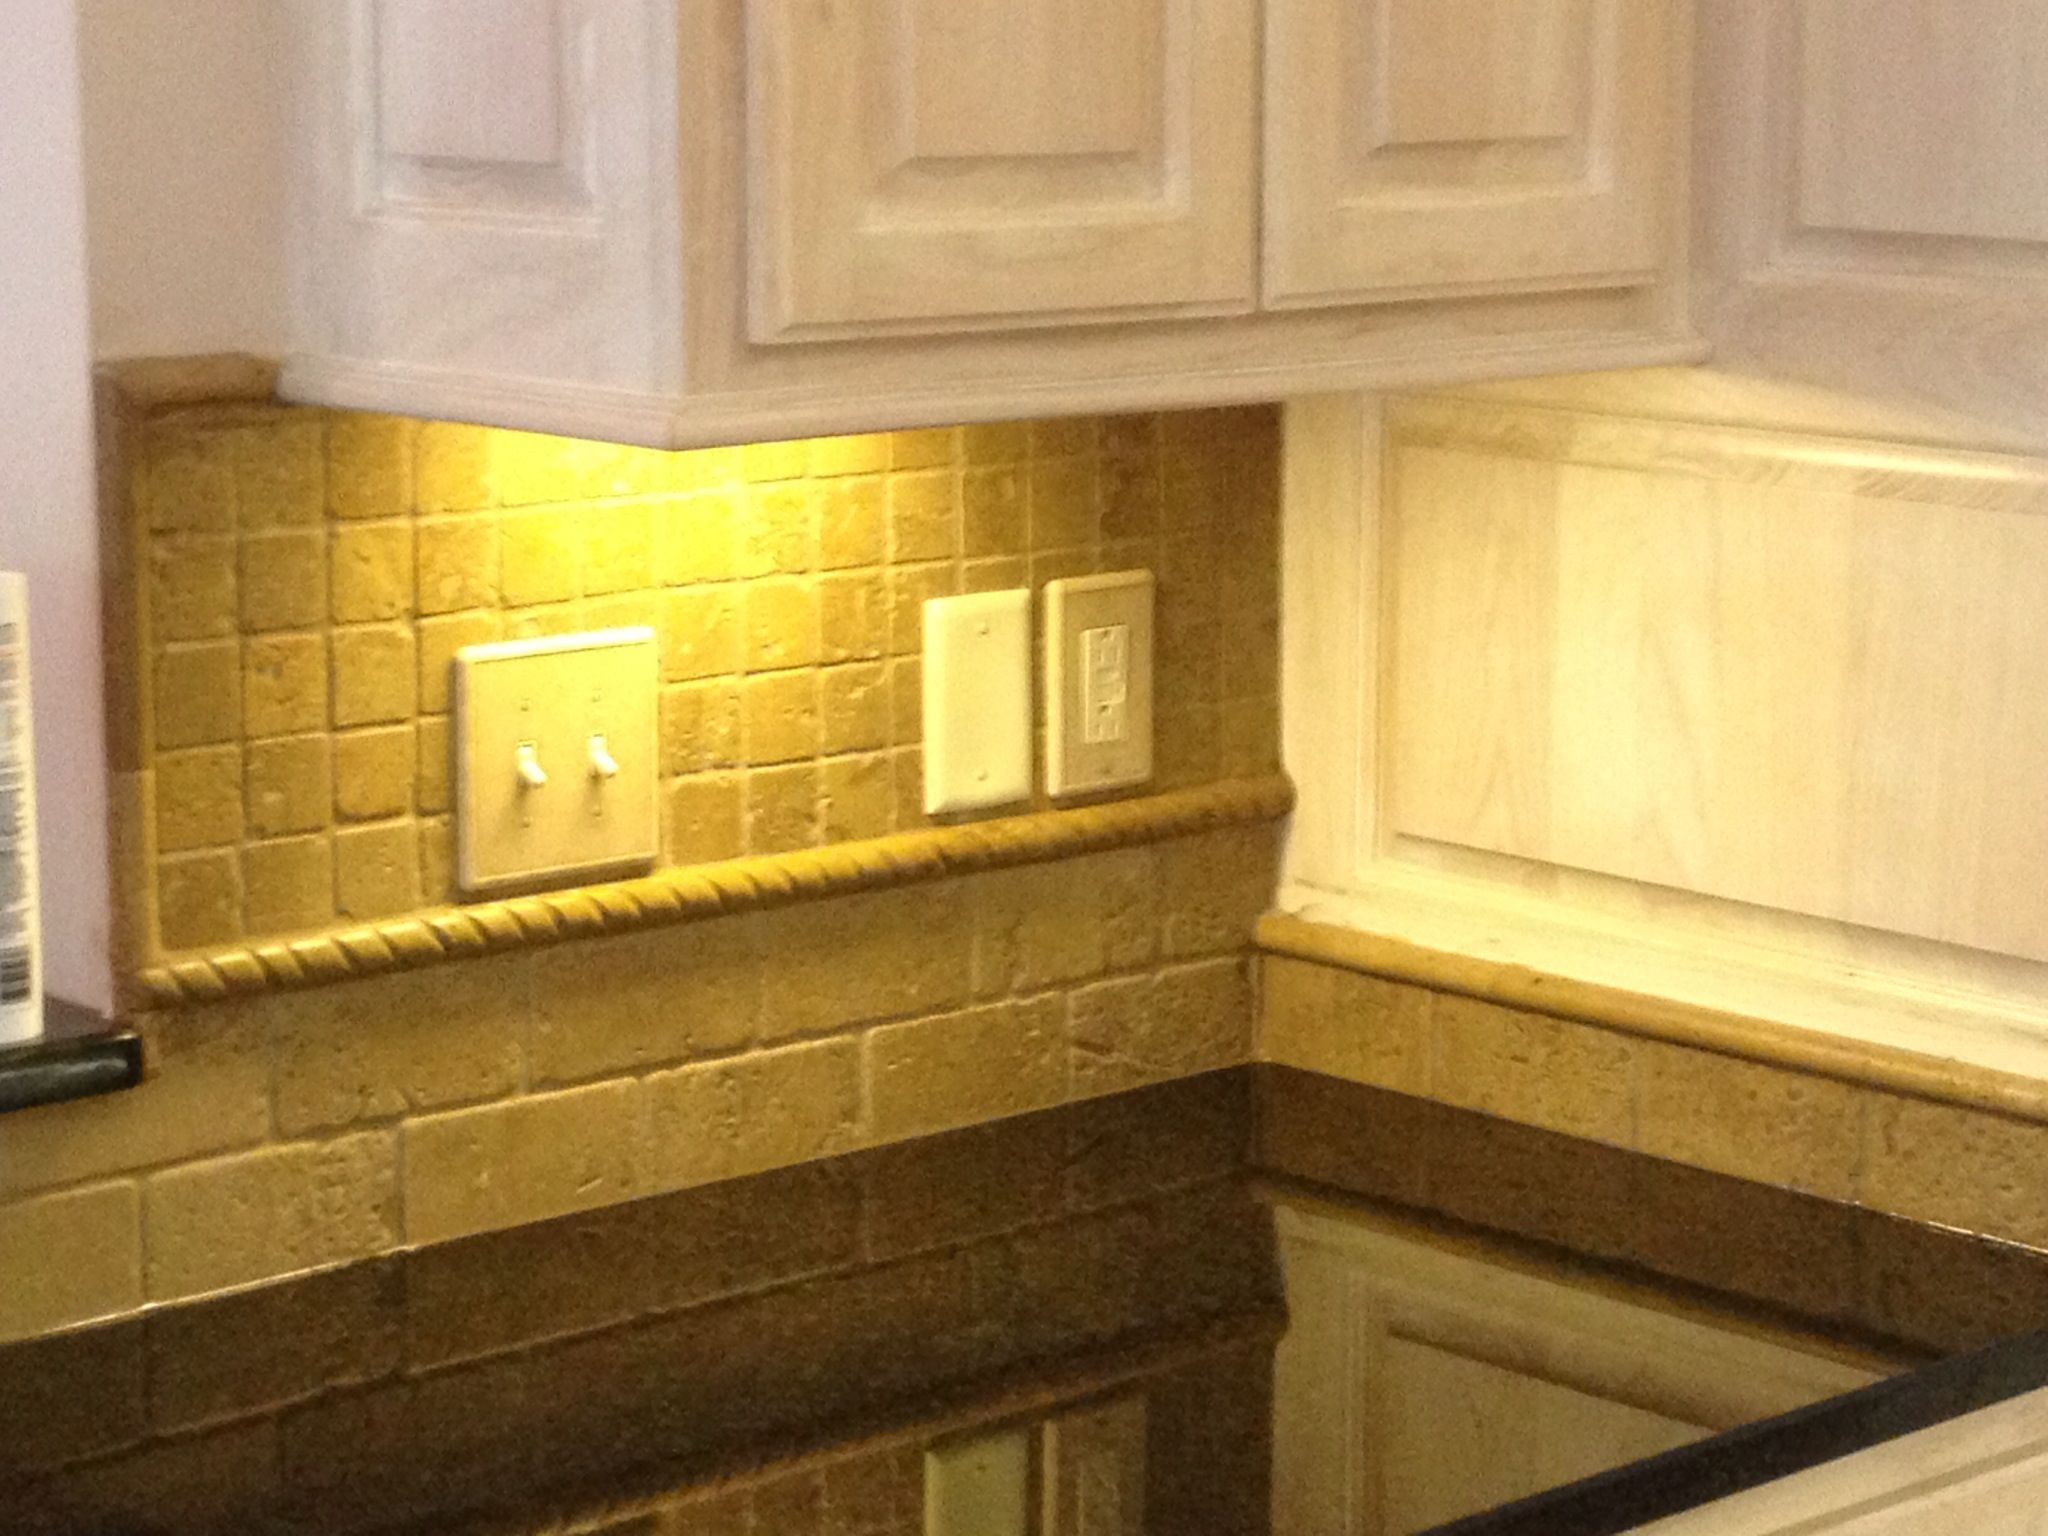 Tumbled travertine backsplash ideas kitchen travertine backsplash ideas kitchen backsplash - Backsplash designs travertine ...